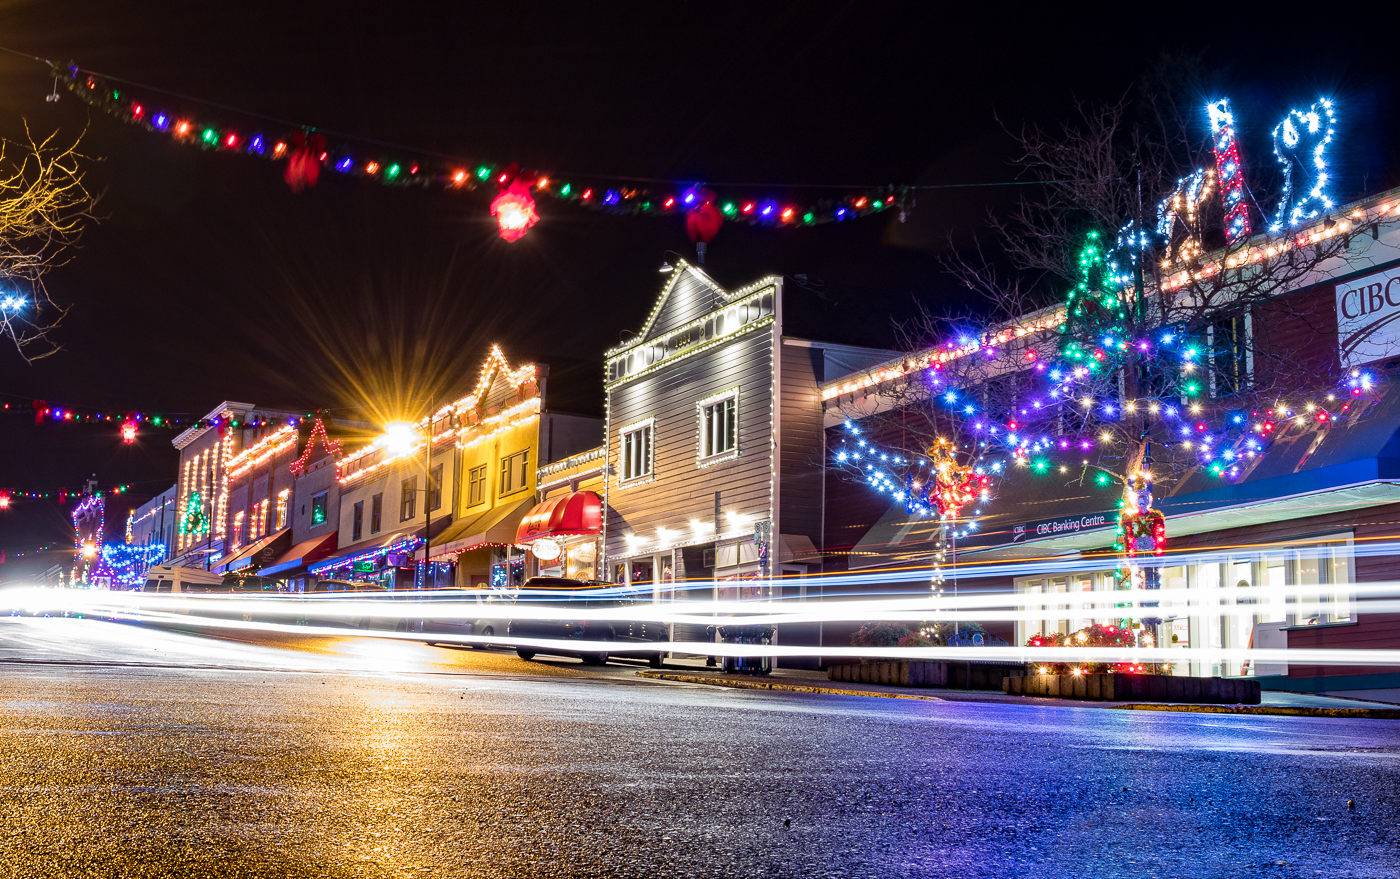 During the Christmas season, people from all over the island travel to the small town of Ladysmith to see the Christmas lights.